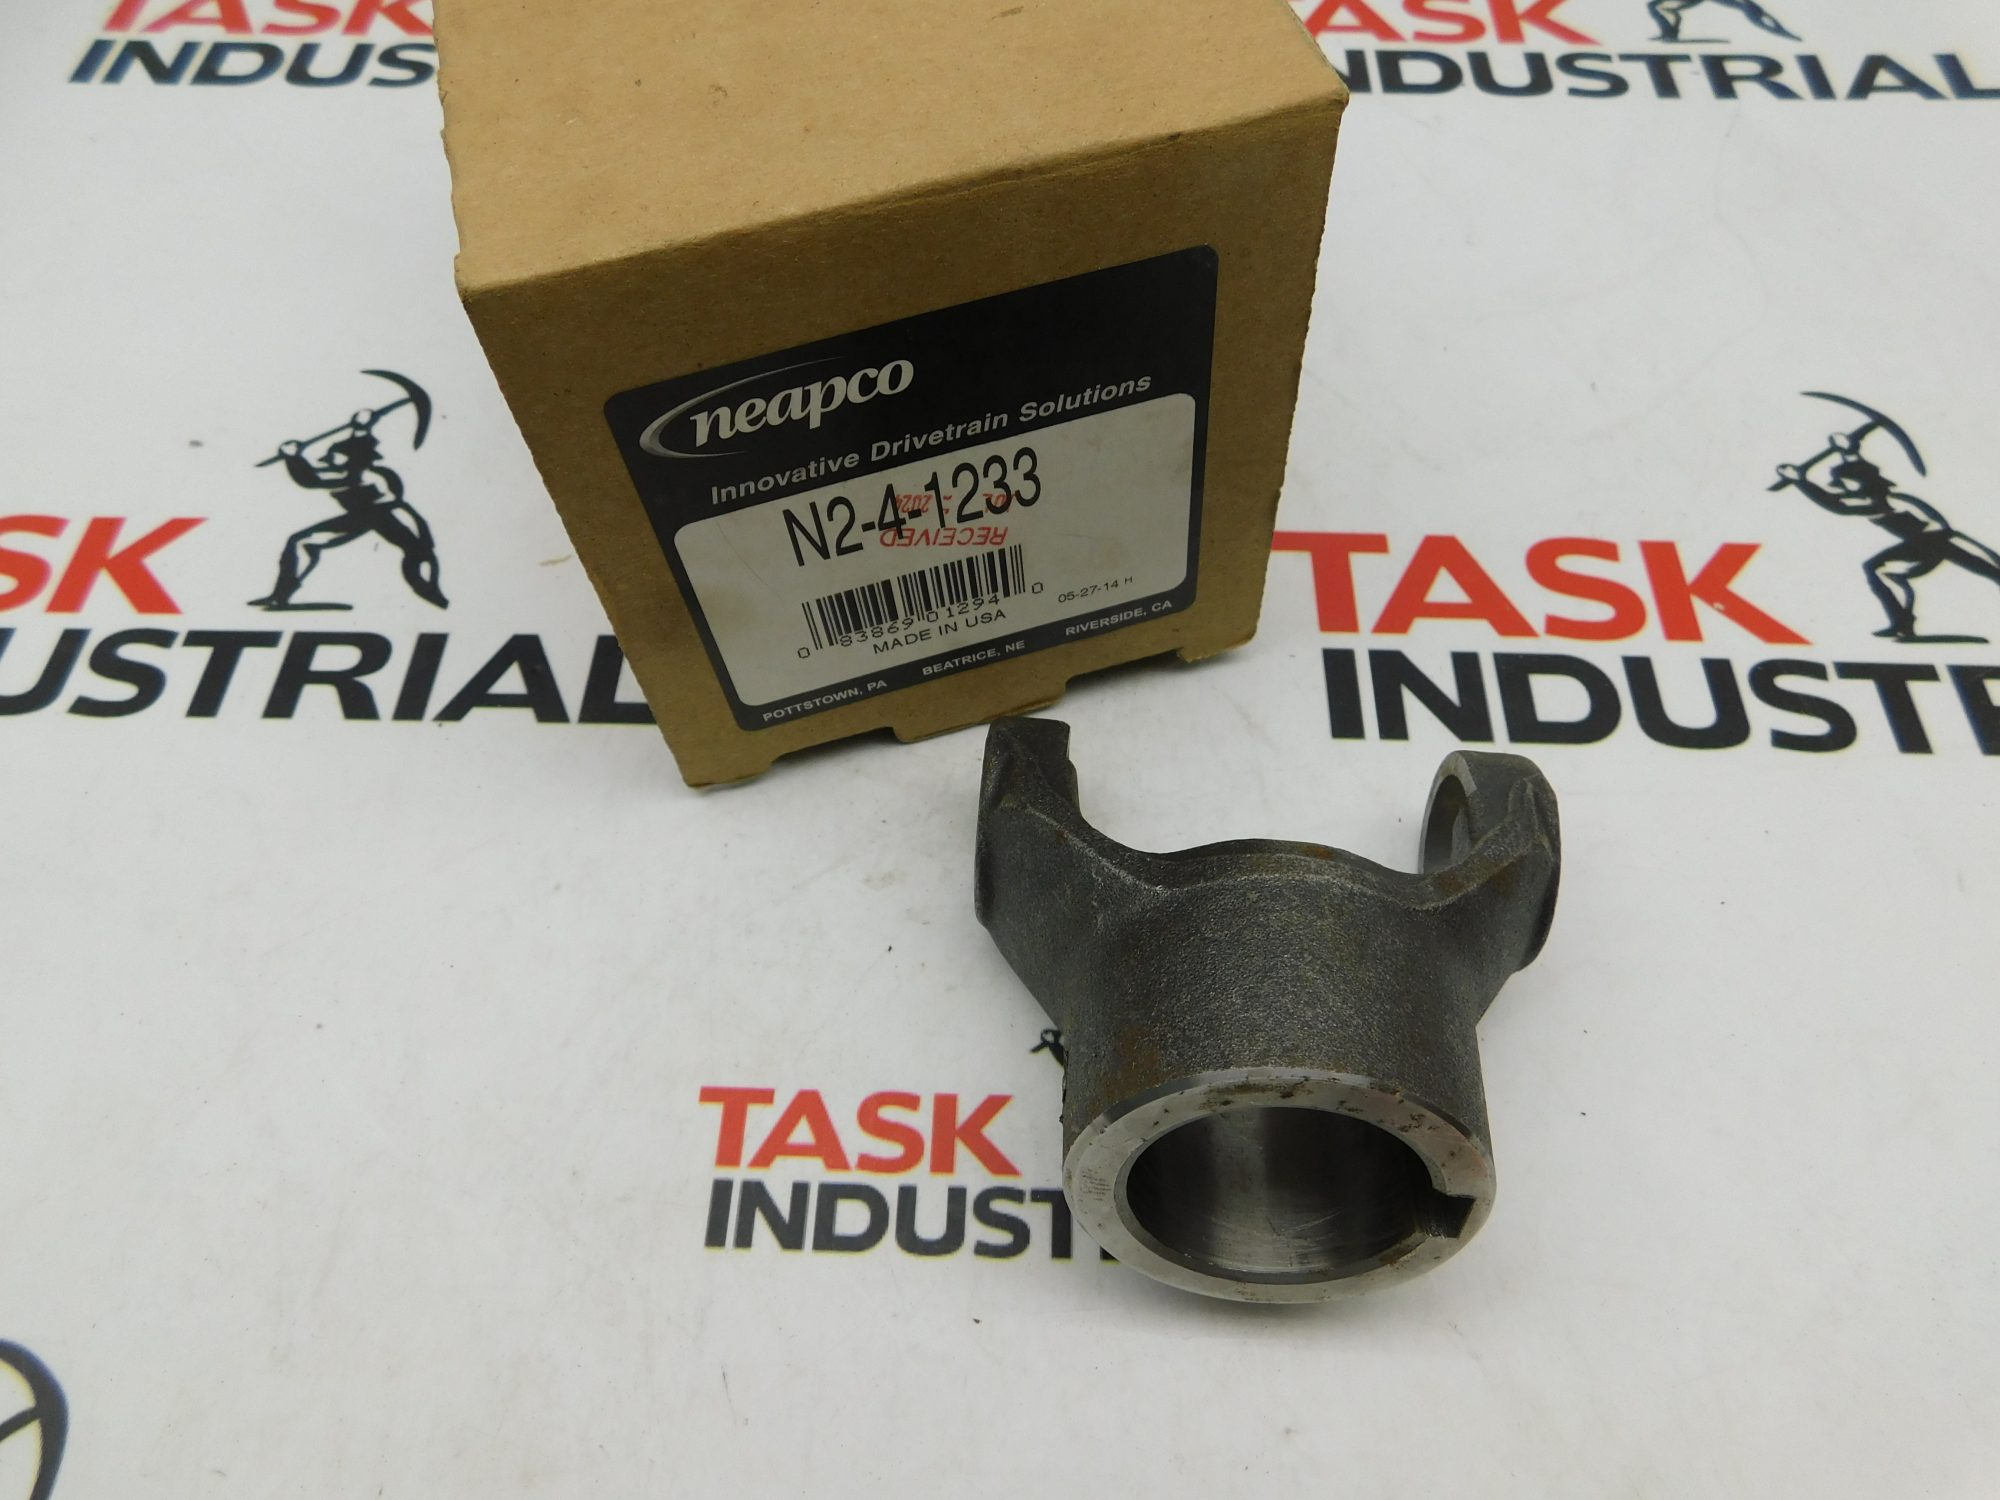 Neapco N2-4-1233 Non-Splined End Yoke